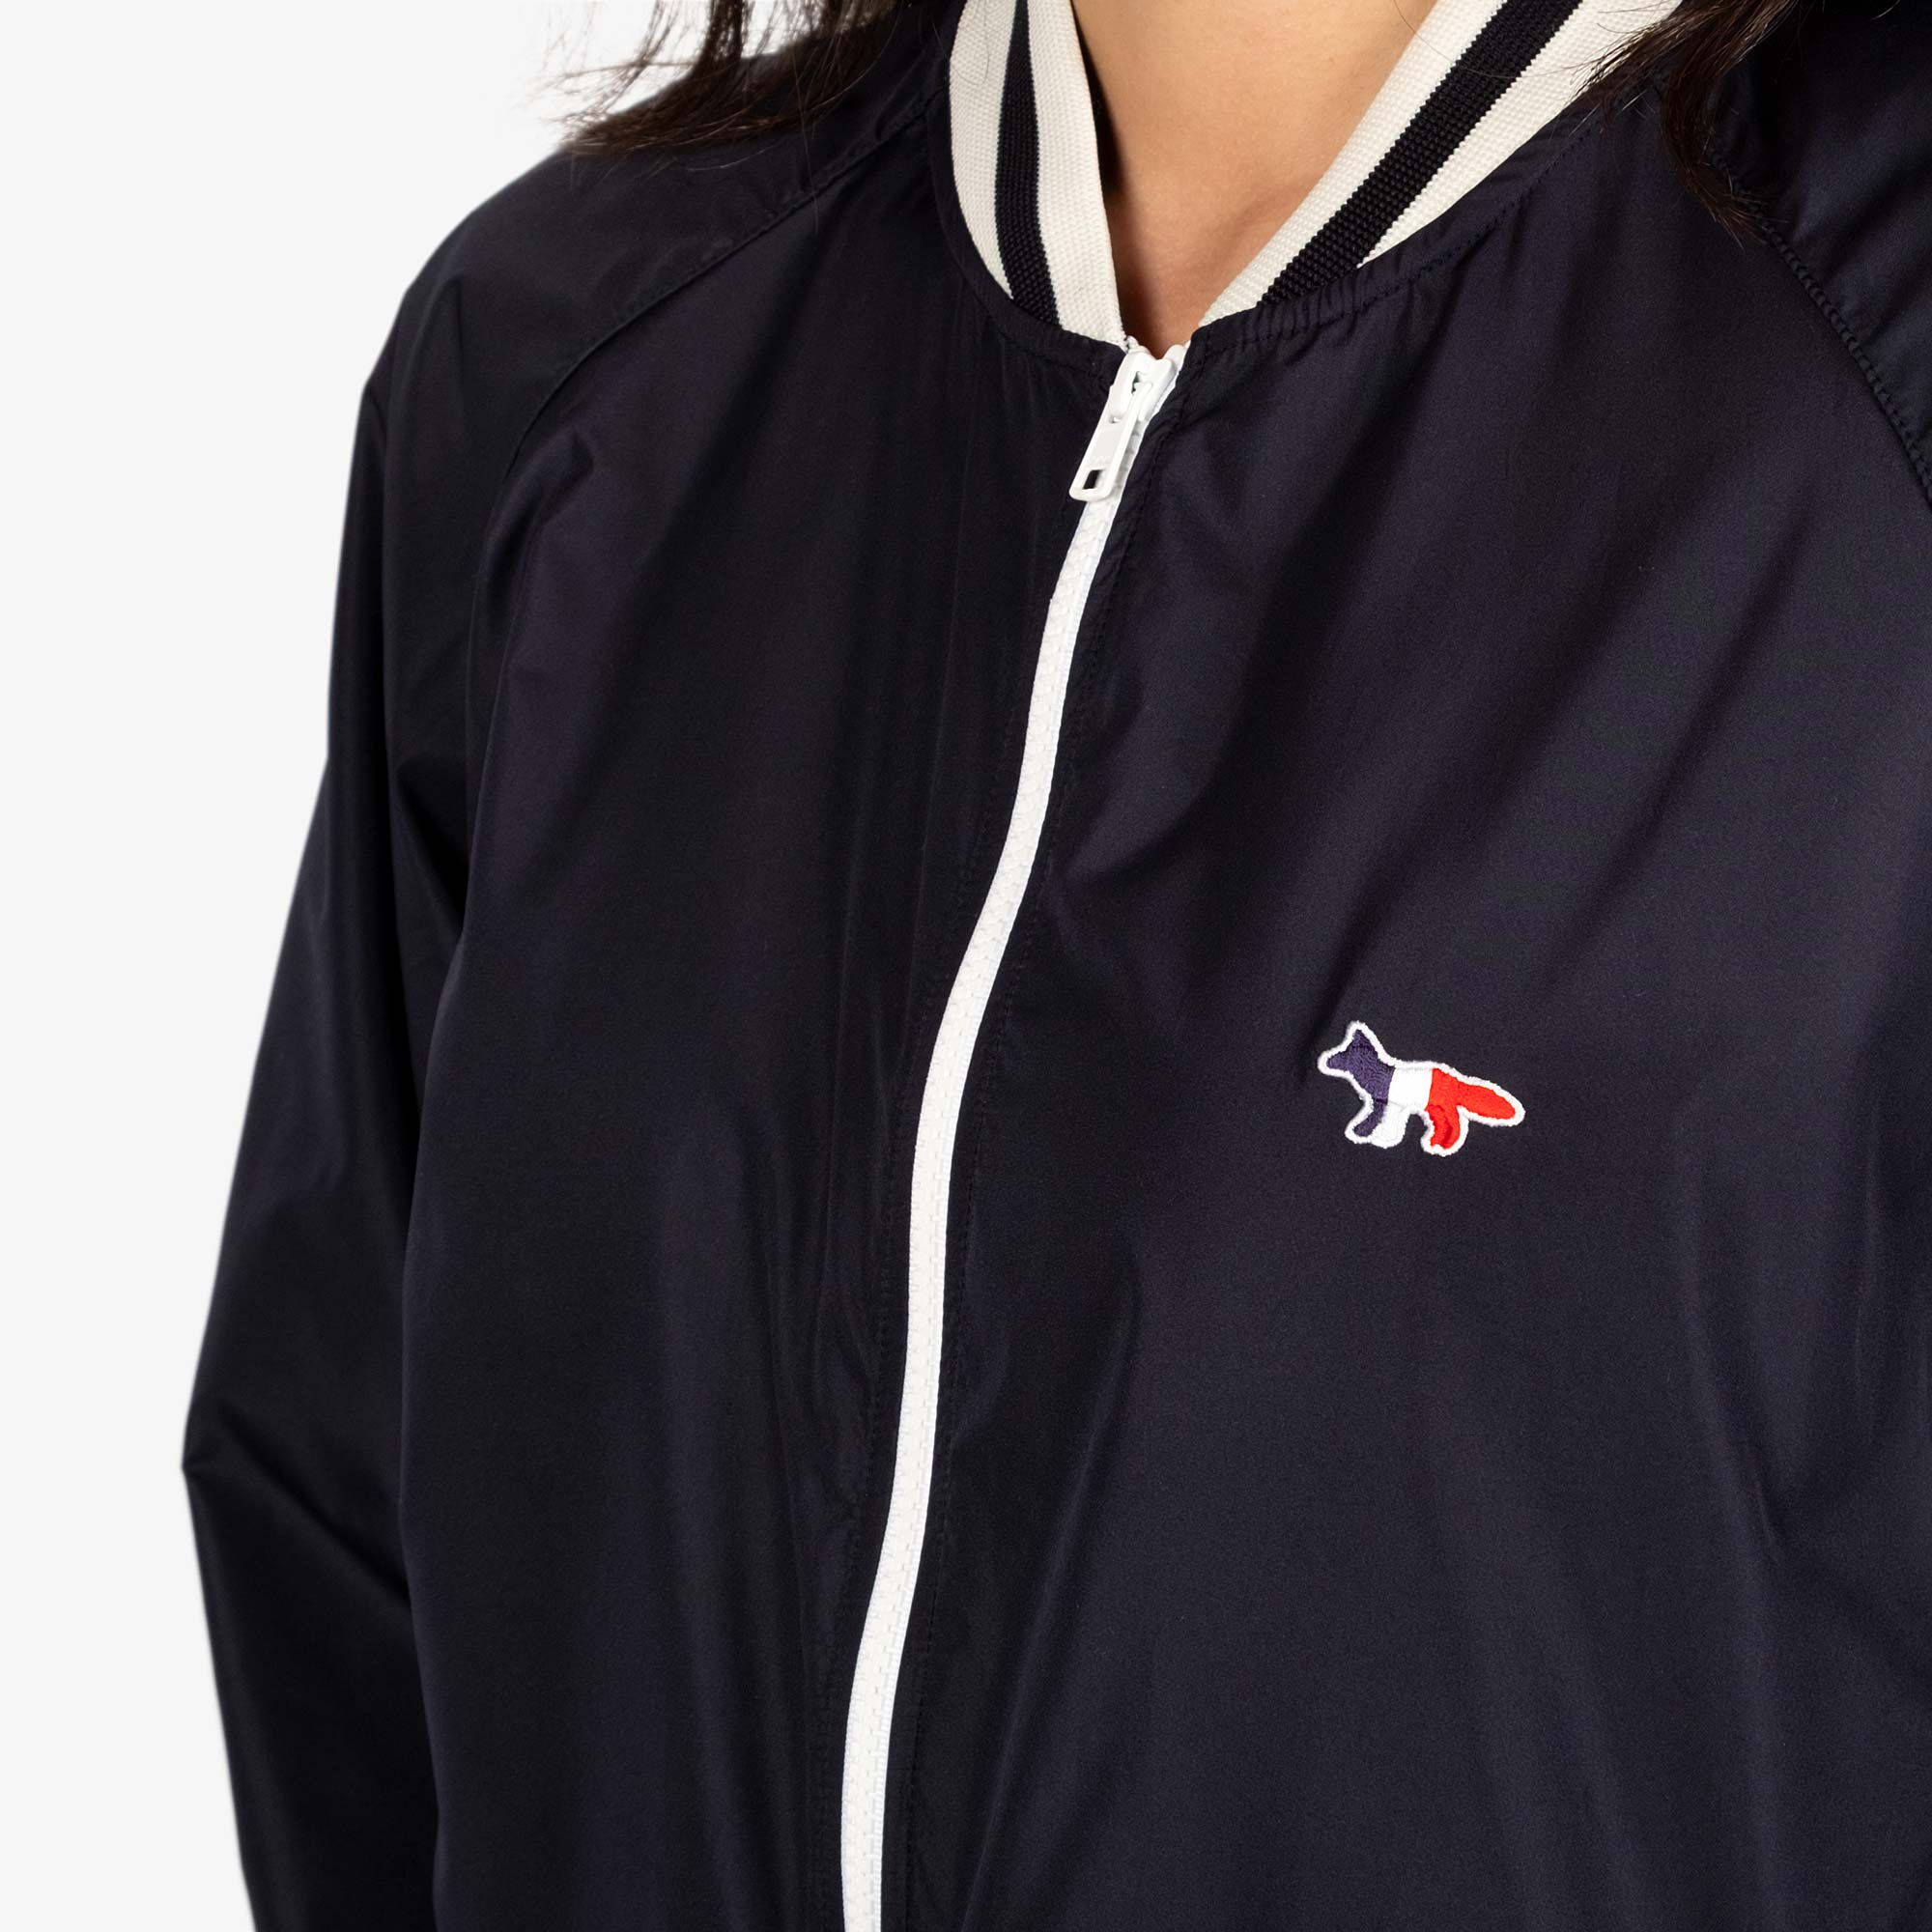 Maison Kitsune Womens Windbreaker - Navy 3